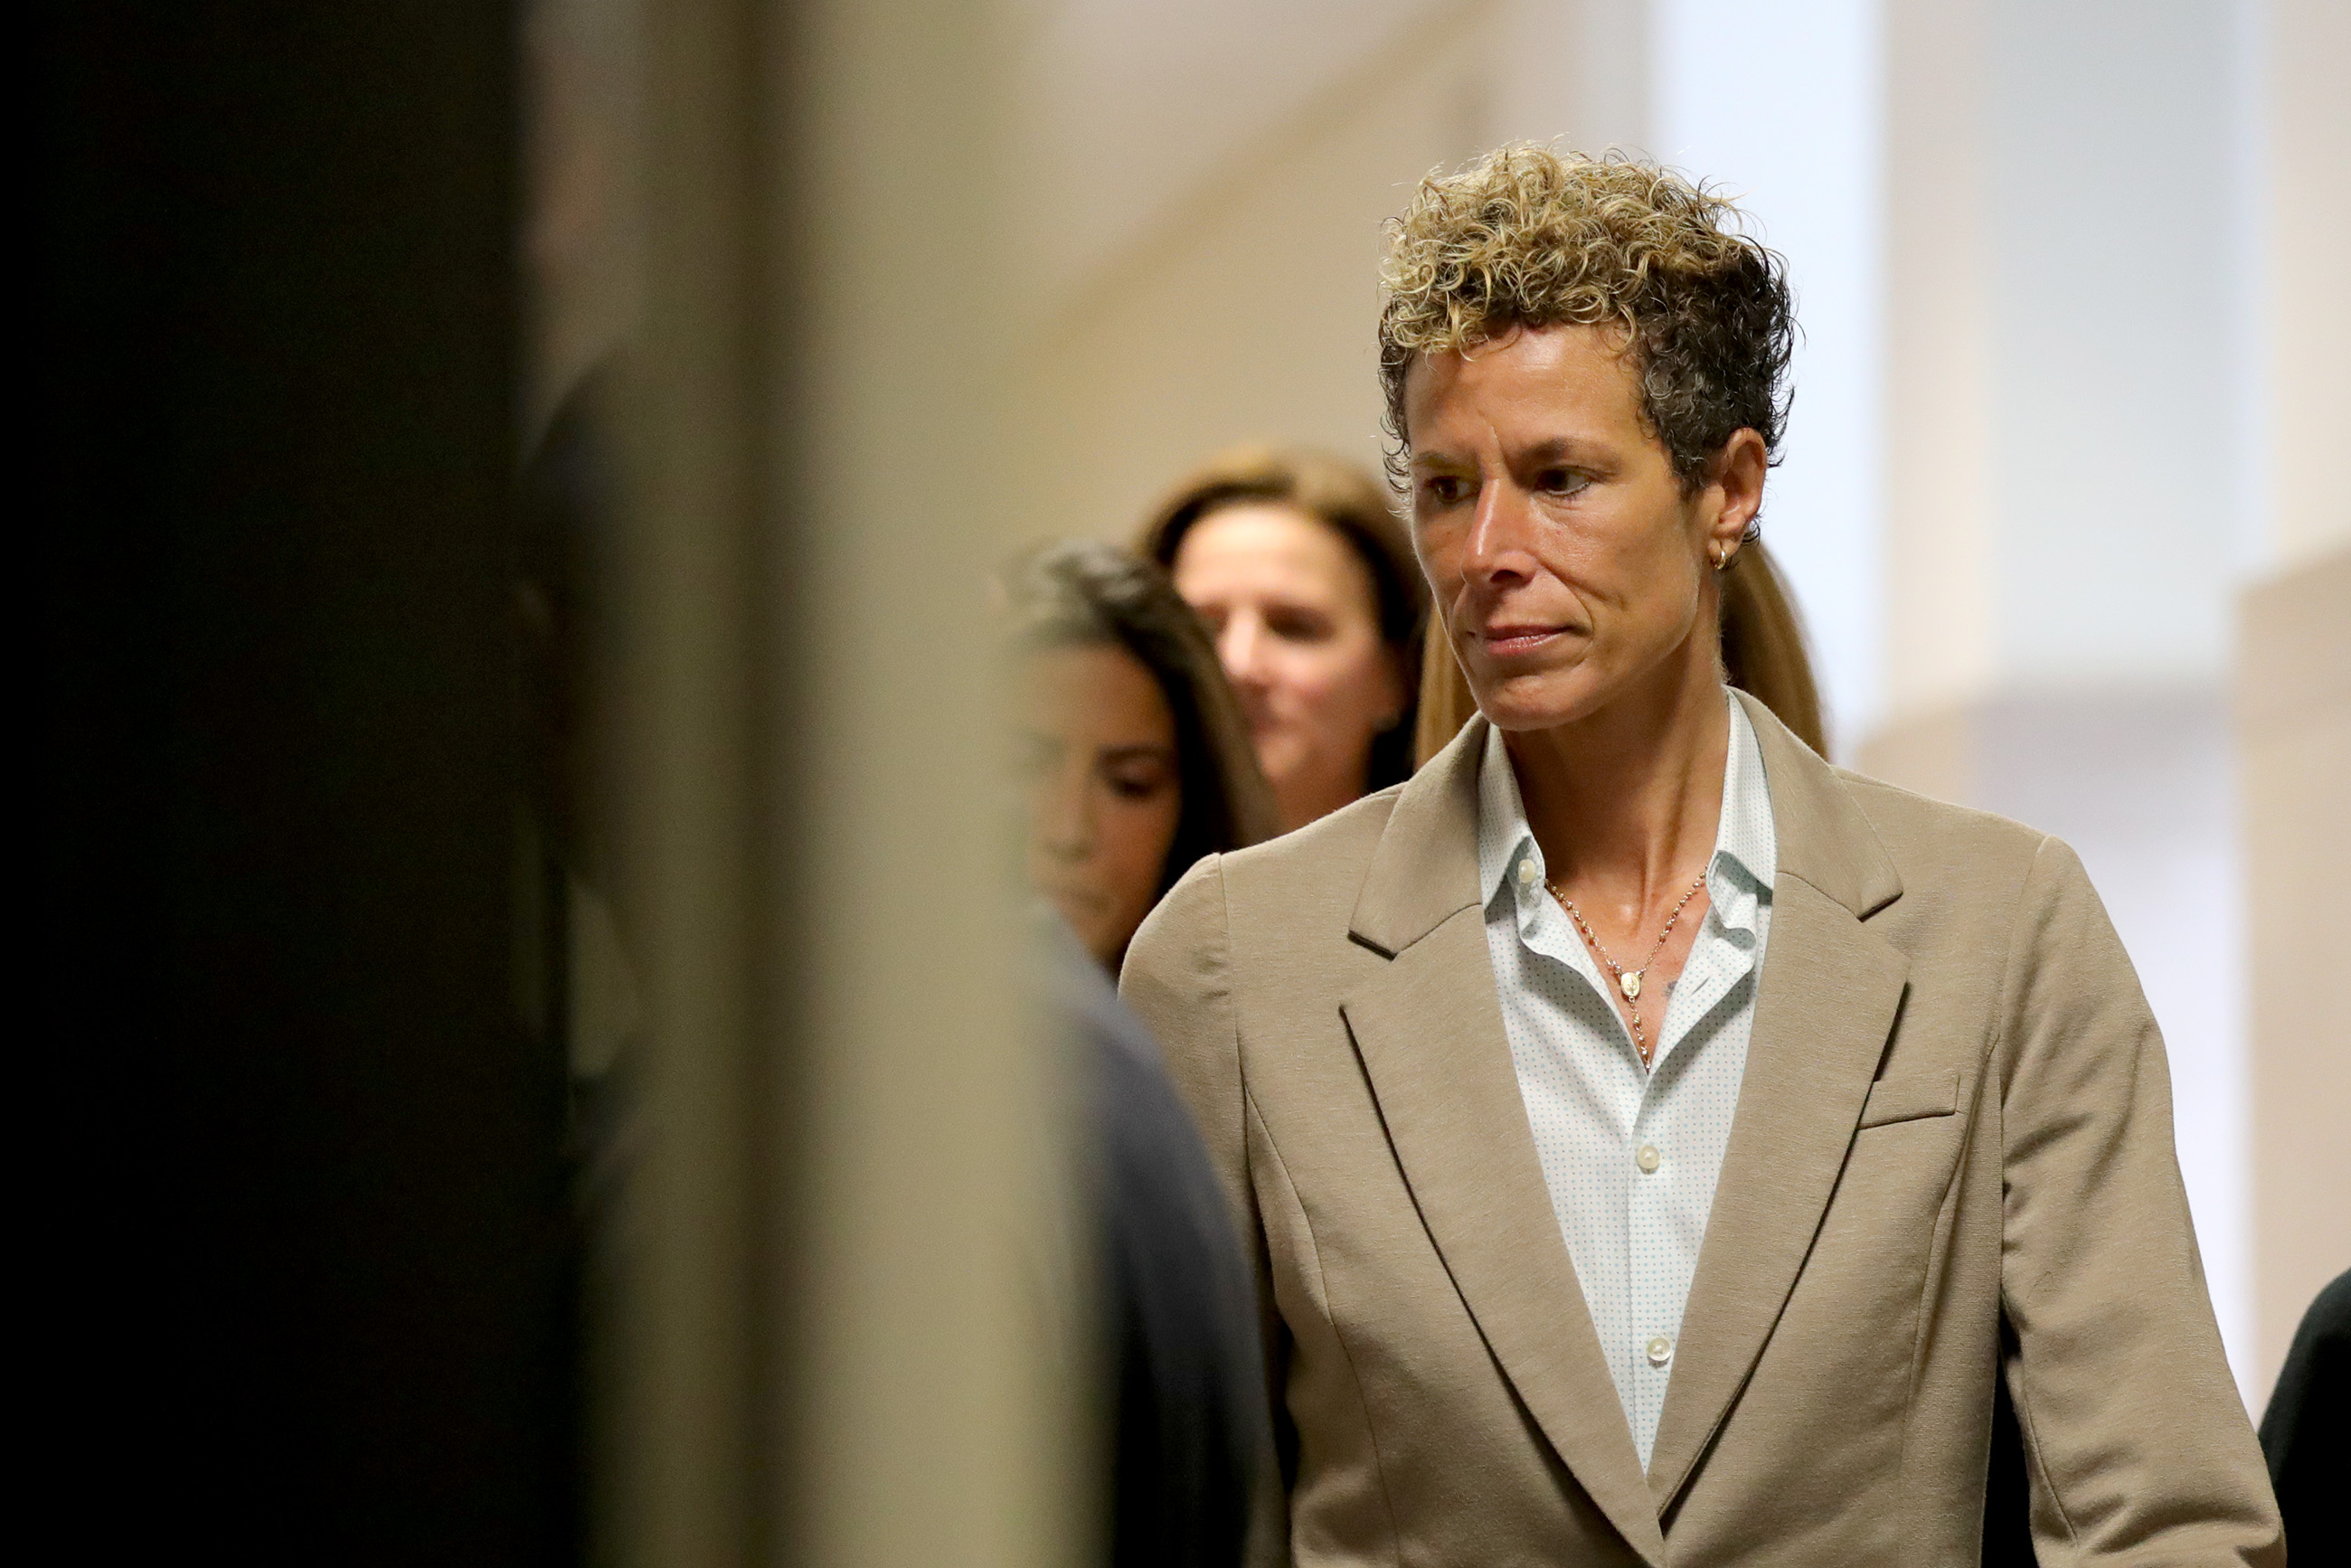 Andrea Constand arrives at the sentencing hearing for the sexual assault trial of entertainer Bill Cosby at the Montgomery County Courthouse September 24, 2018 in Norristown, Pennsylvania. (Pool—Getty Images)